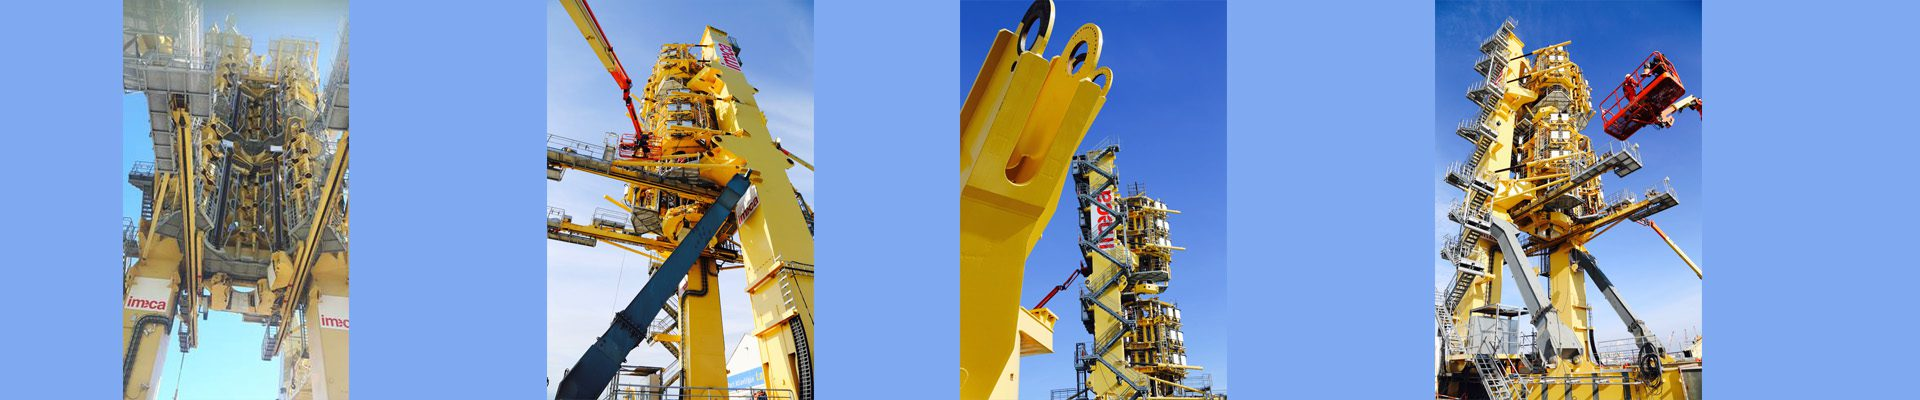 Pipe lay towers